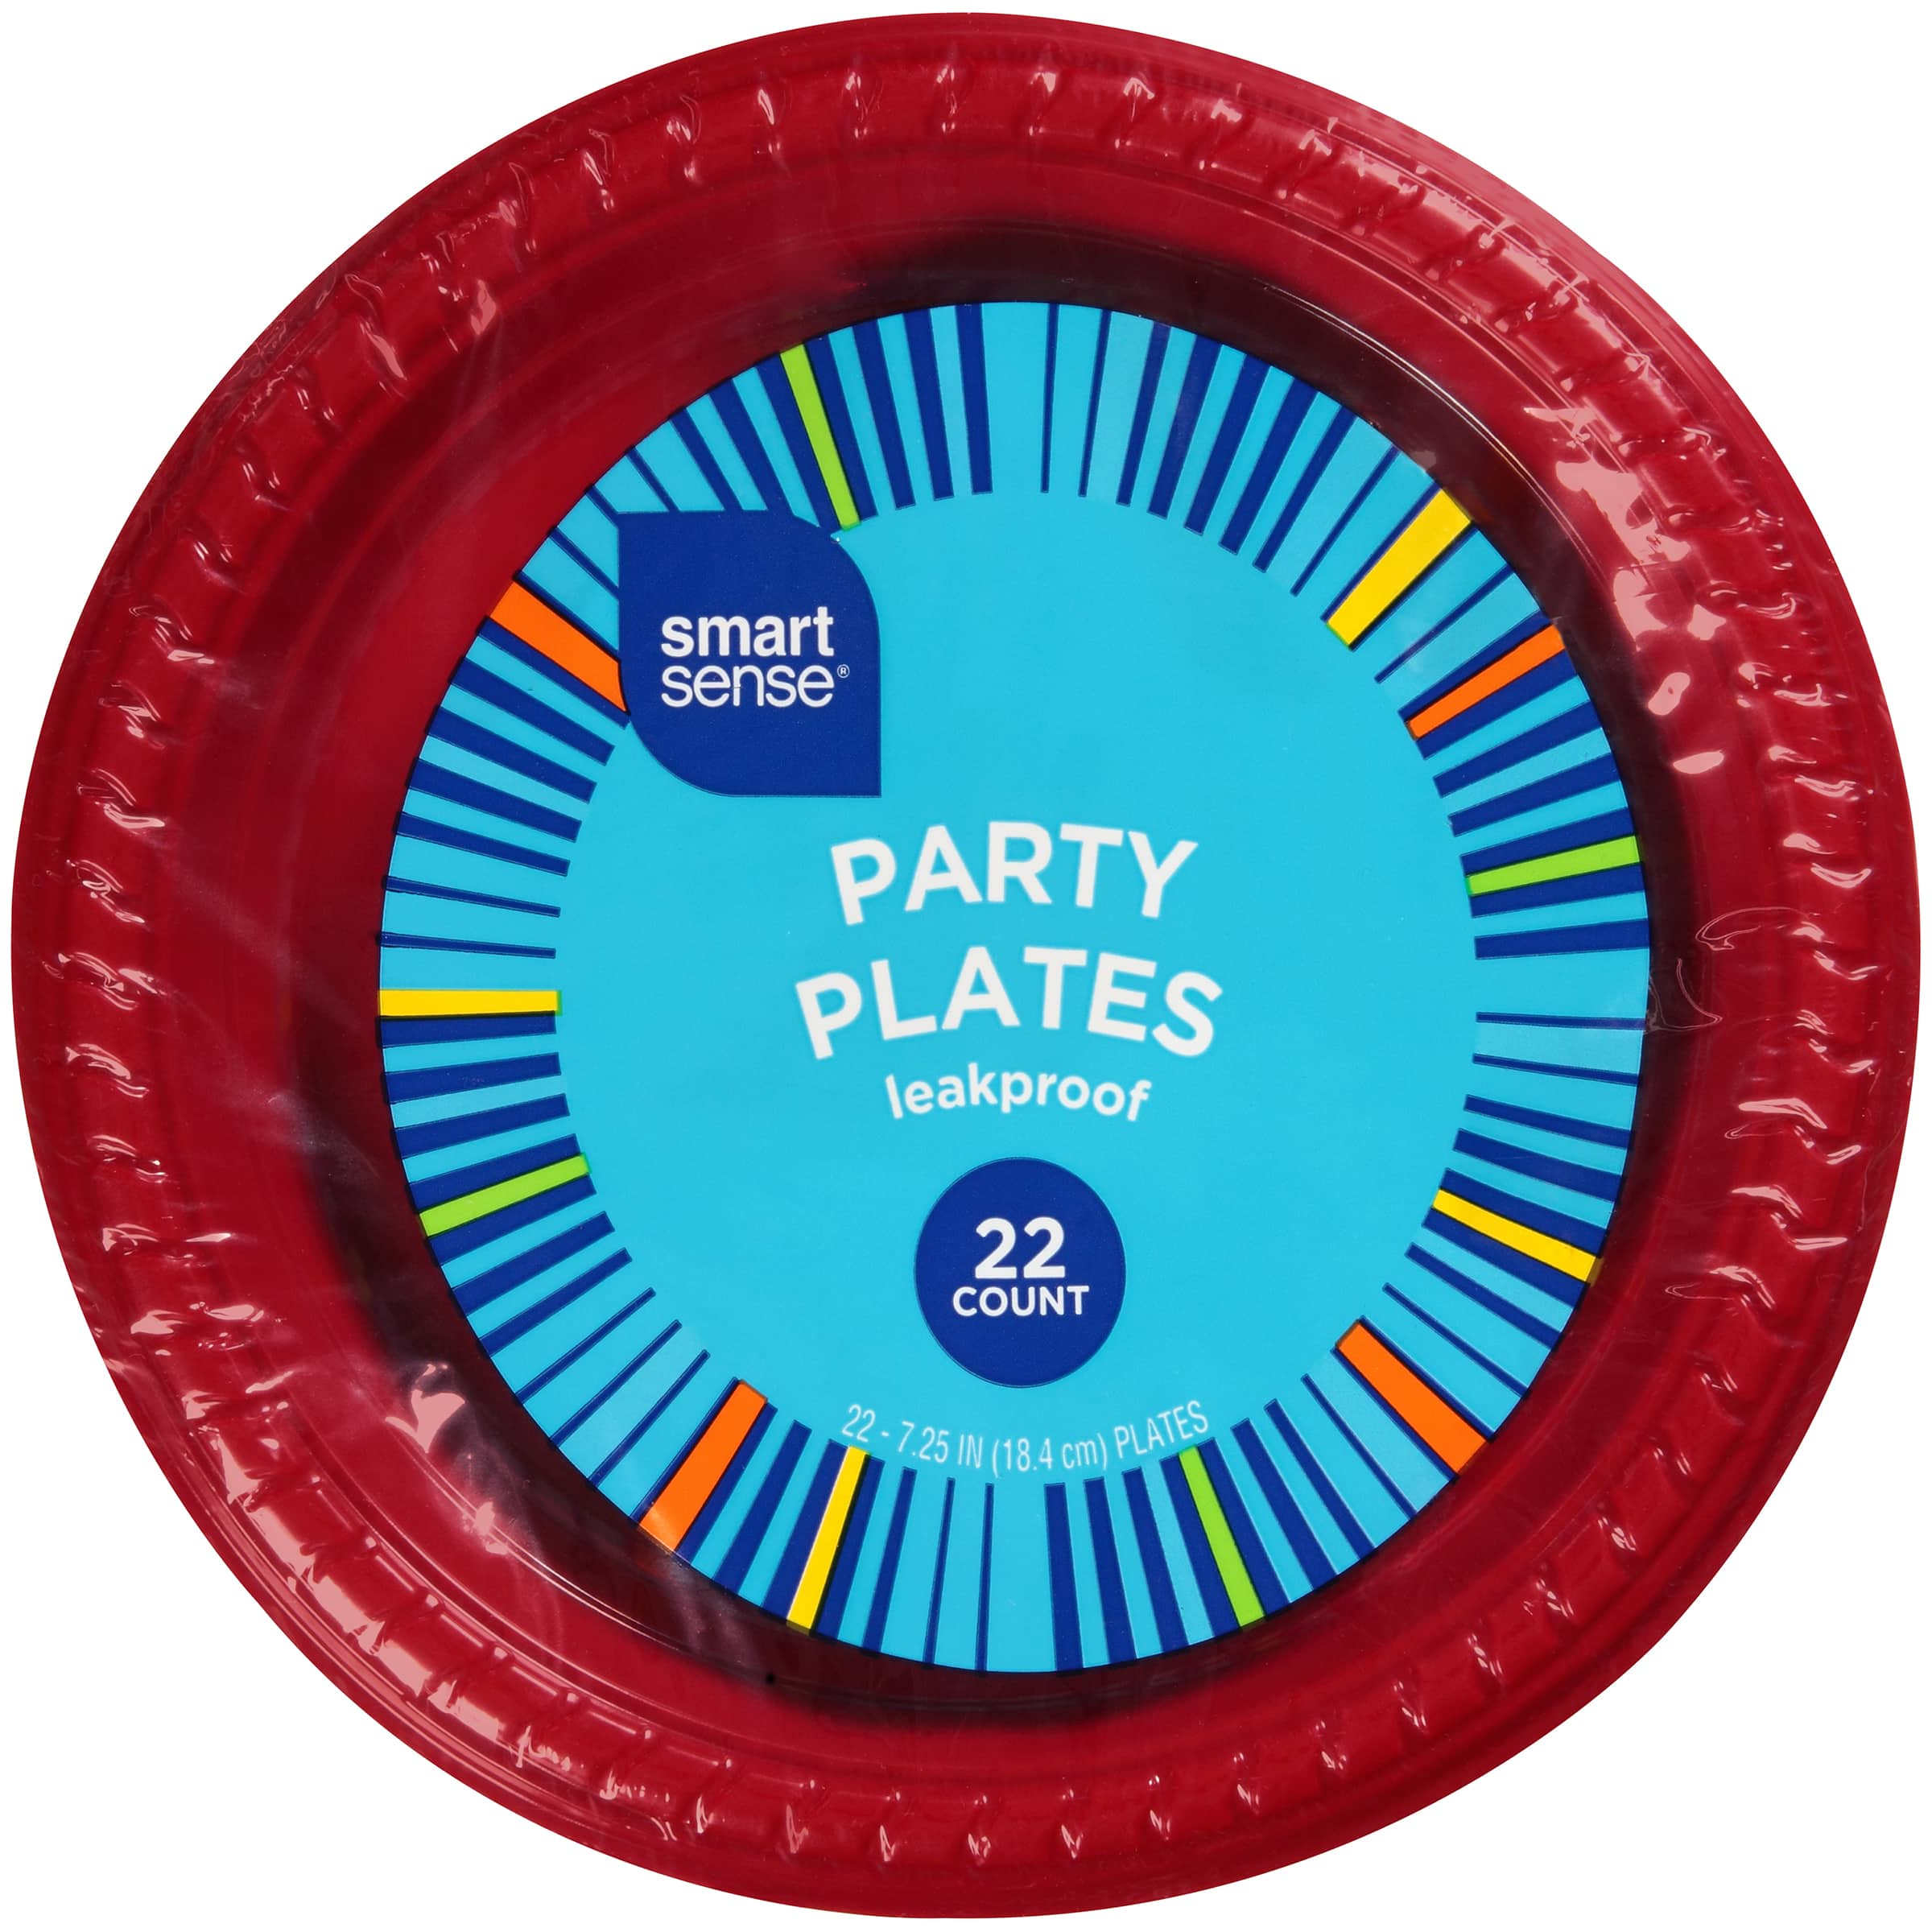 Free Smart Sense 22 Ct. Party Plates After Coupon @ Kmart B&M via iOS or Android App - Must Be Loaded on Friday, 06/17/16 Only